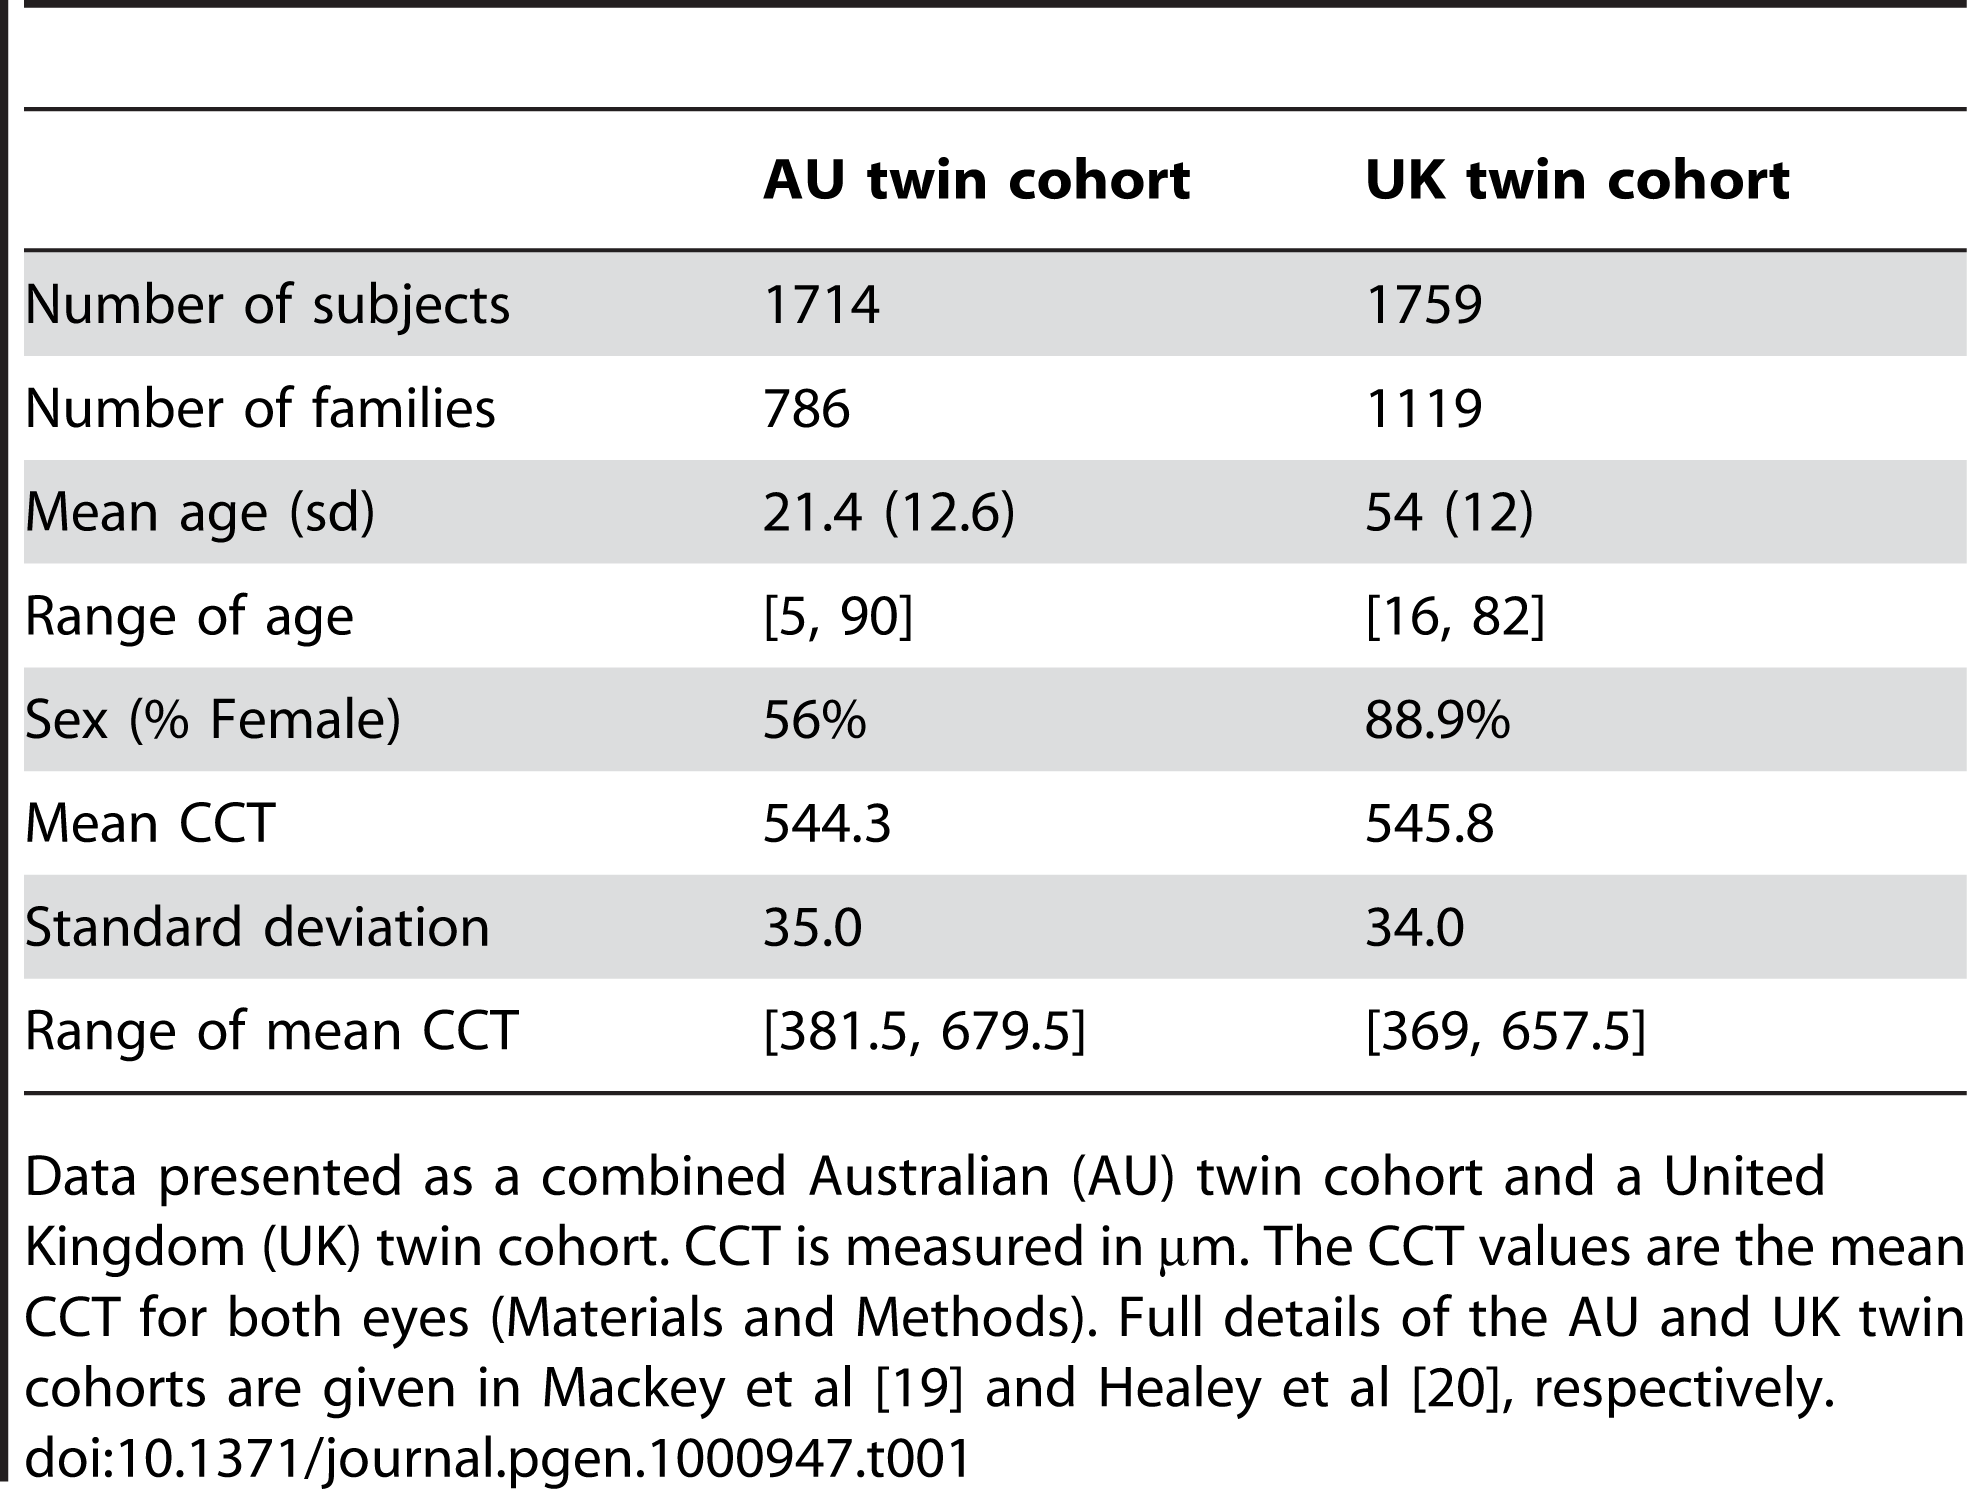 Descriptive statistics for central corneal thickness (CCT) in the three twin cohorts.